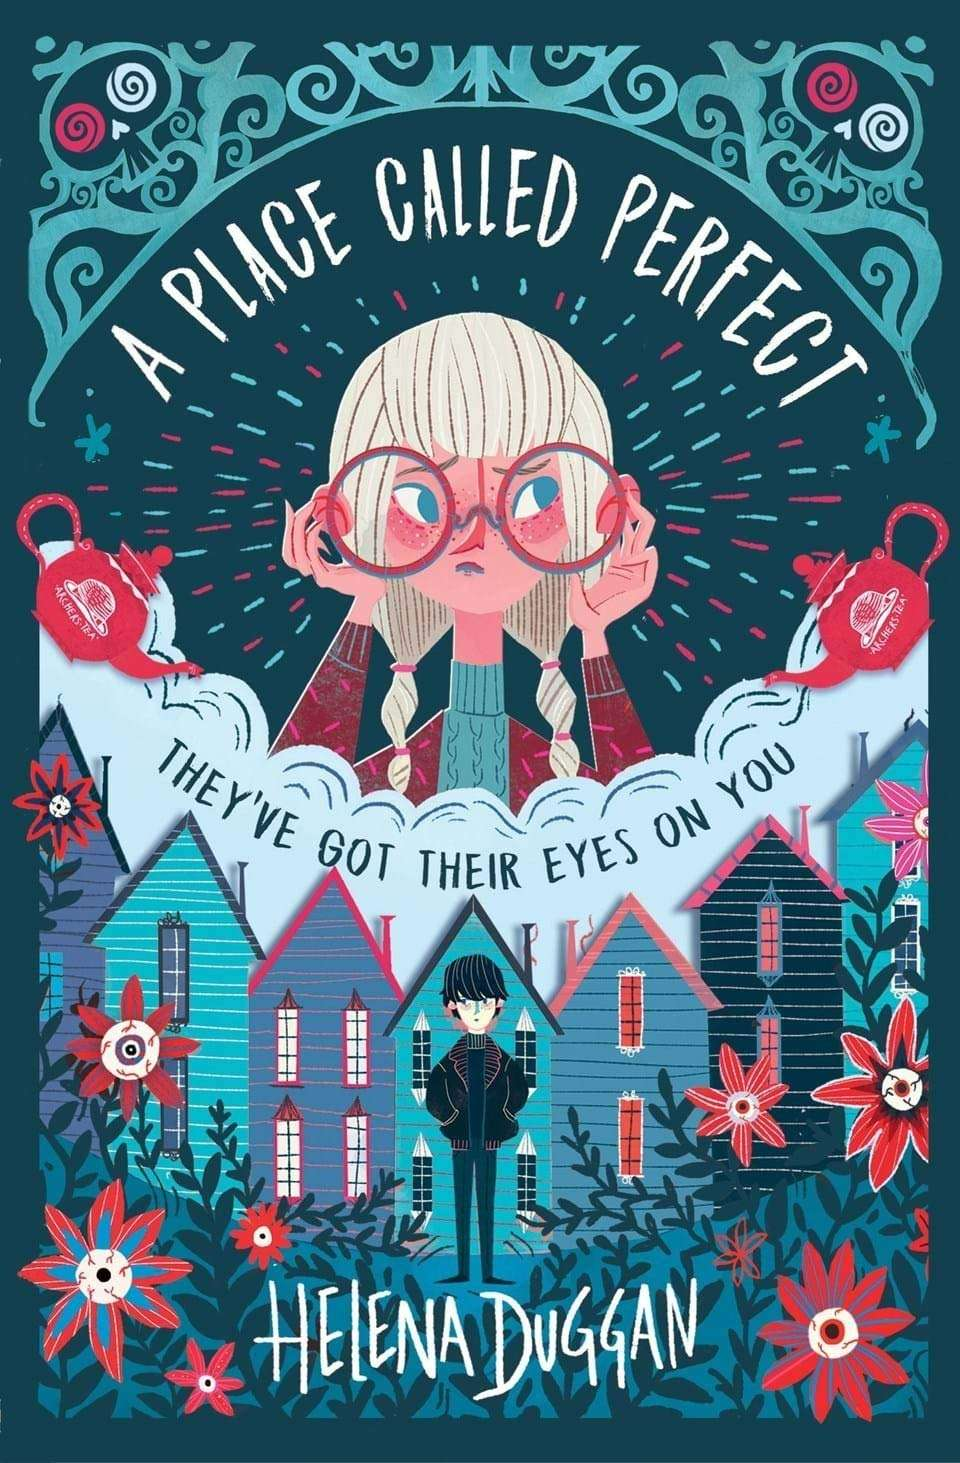 Book review a place called perfect helena duggan